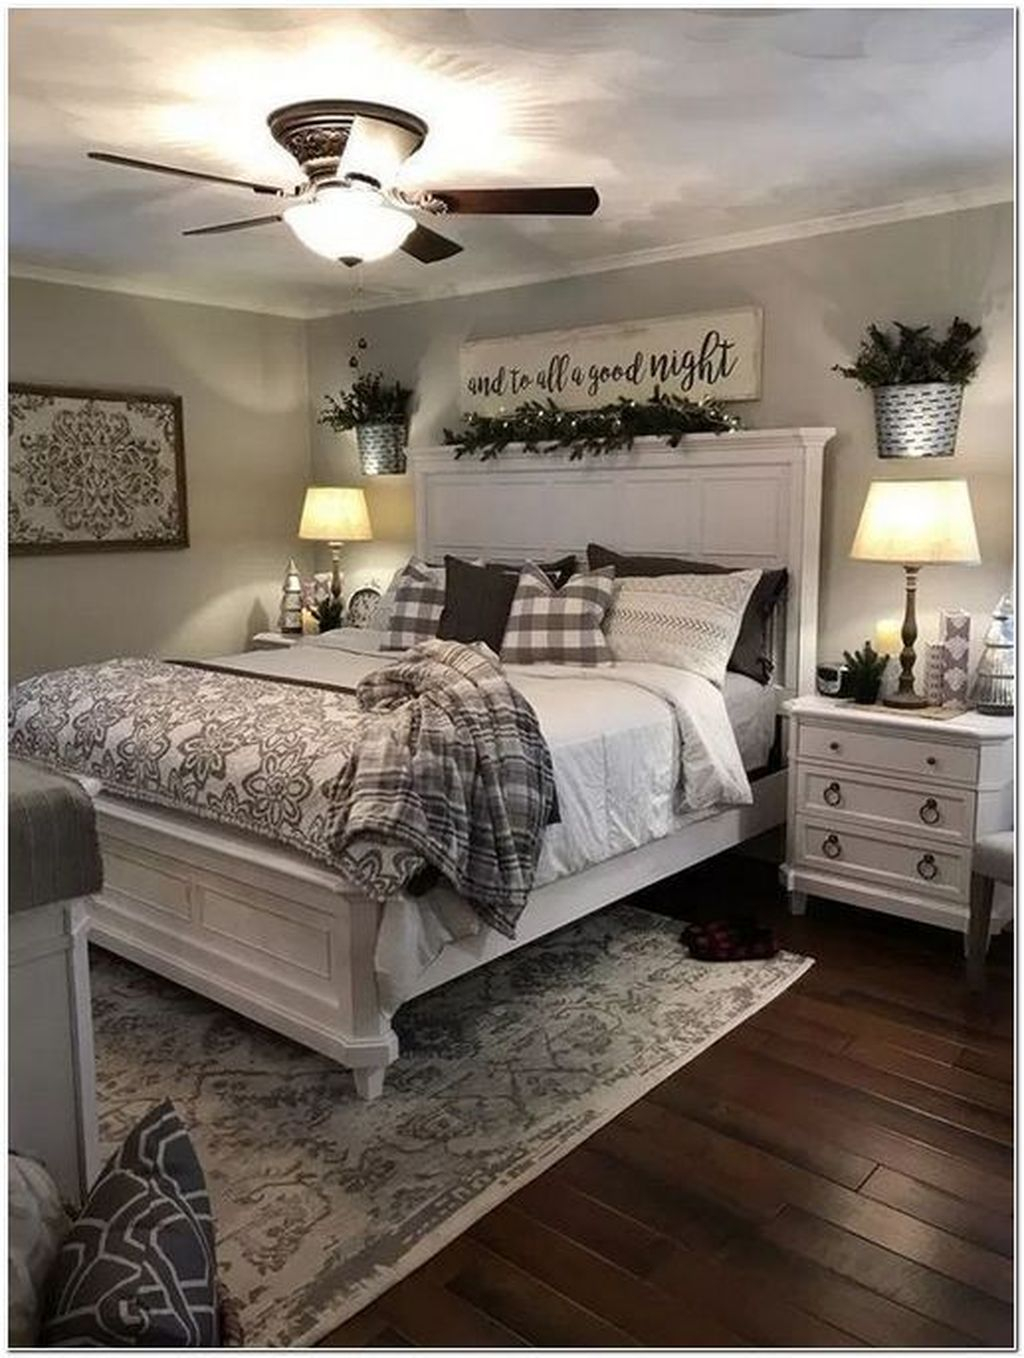 Admiring Bedroom Decor Ideas To Have Right Now 27